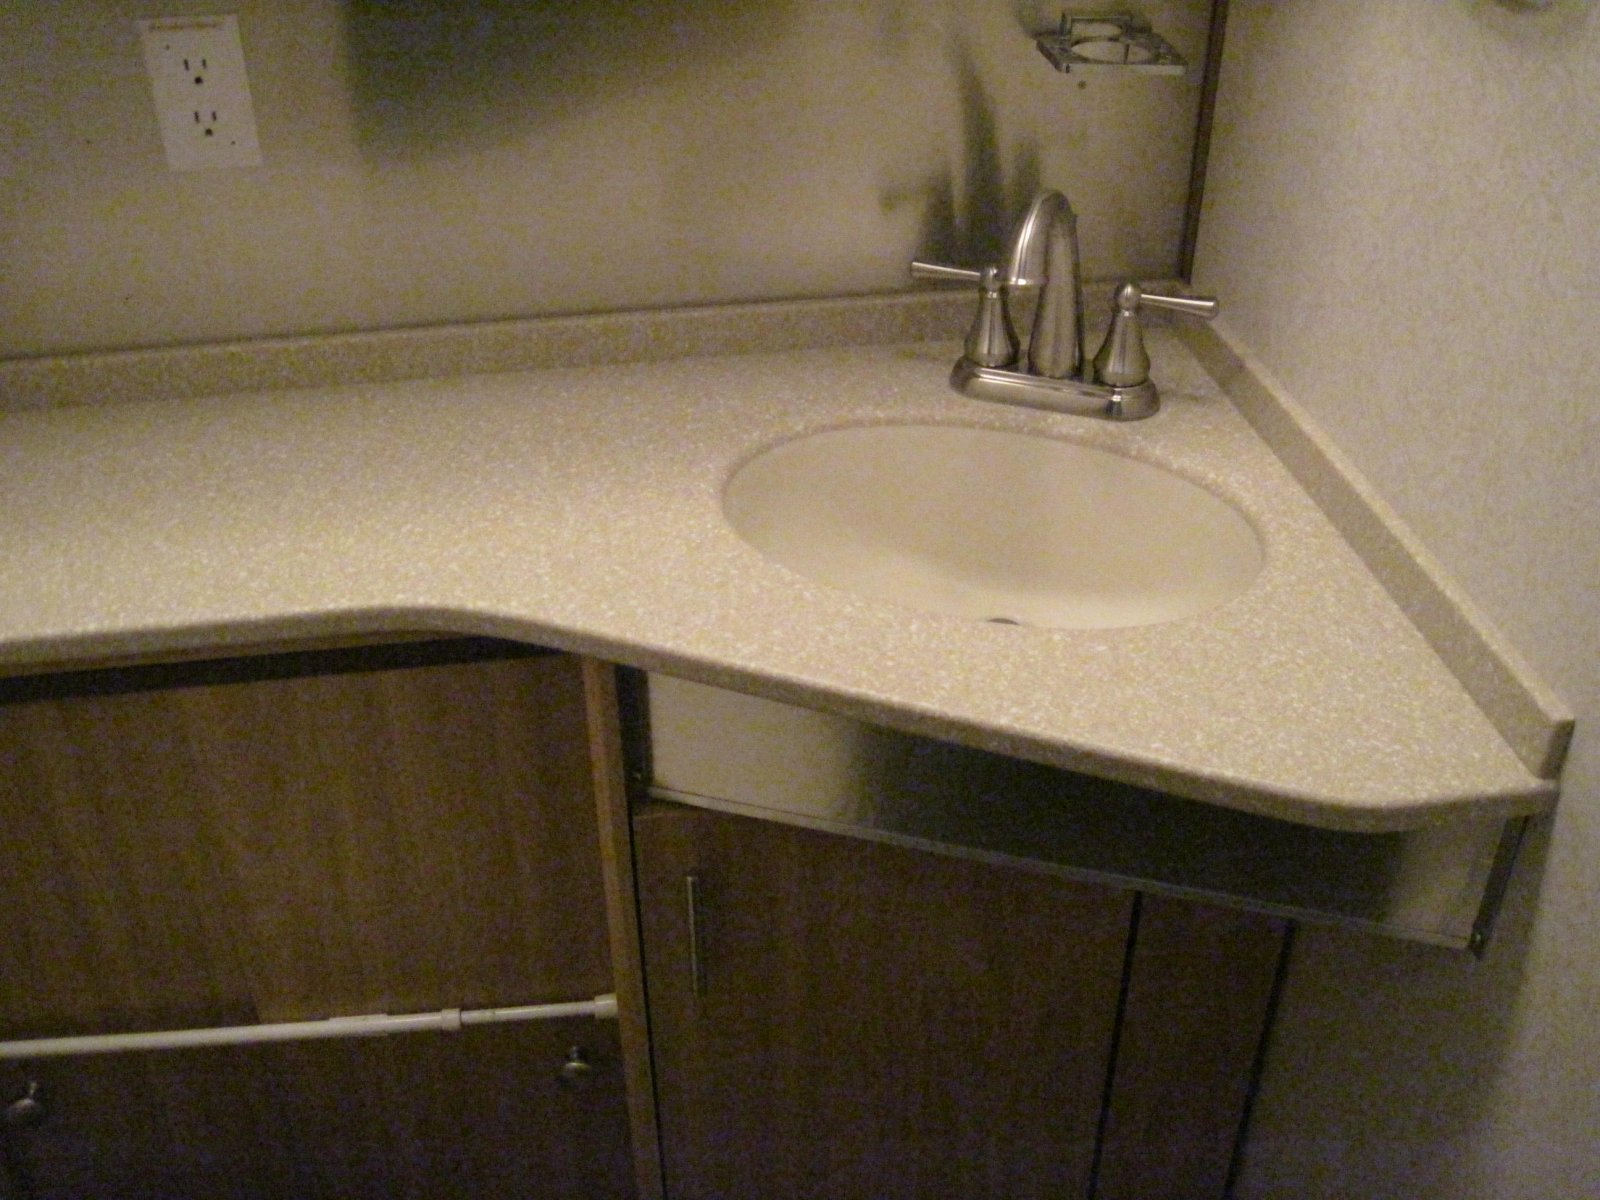 Click image for larger version  Name:NewBathroom.jpg Views:113 Size:295.4 KB ID:102580